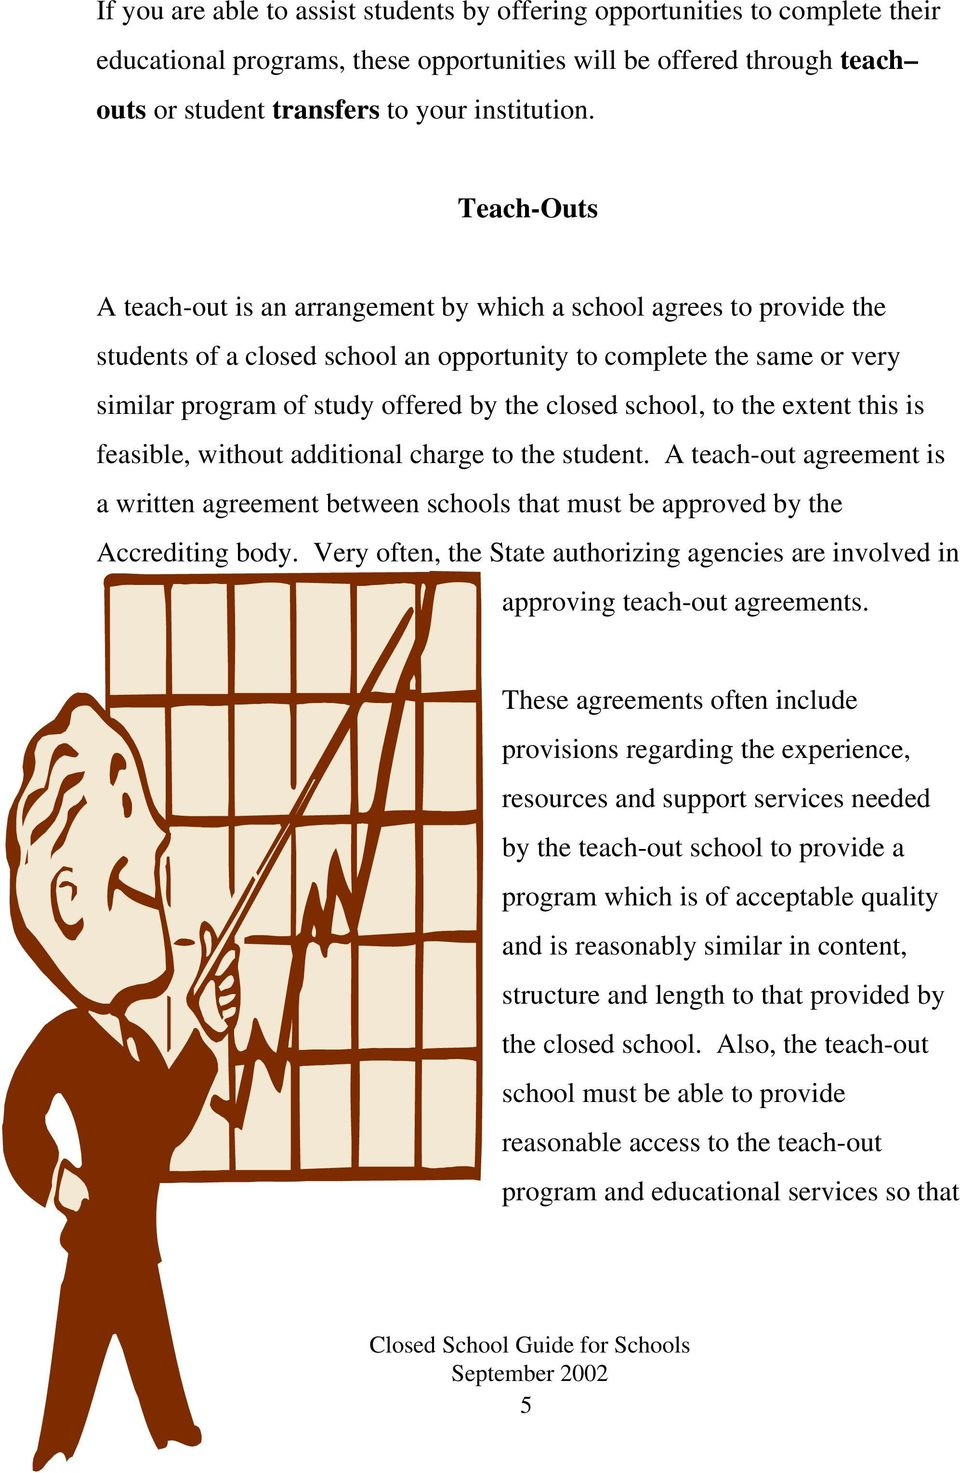 school, to the extent this is feasible, without additional charge to the student. A teach-out agreement is a written agreement between schools that must be approved by the Accrediting body.